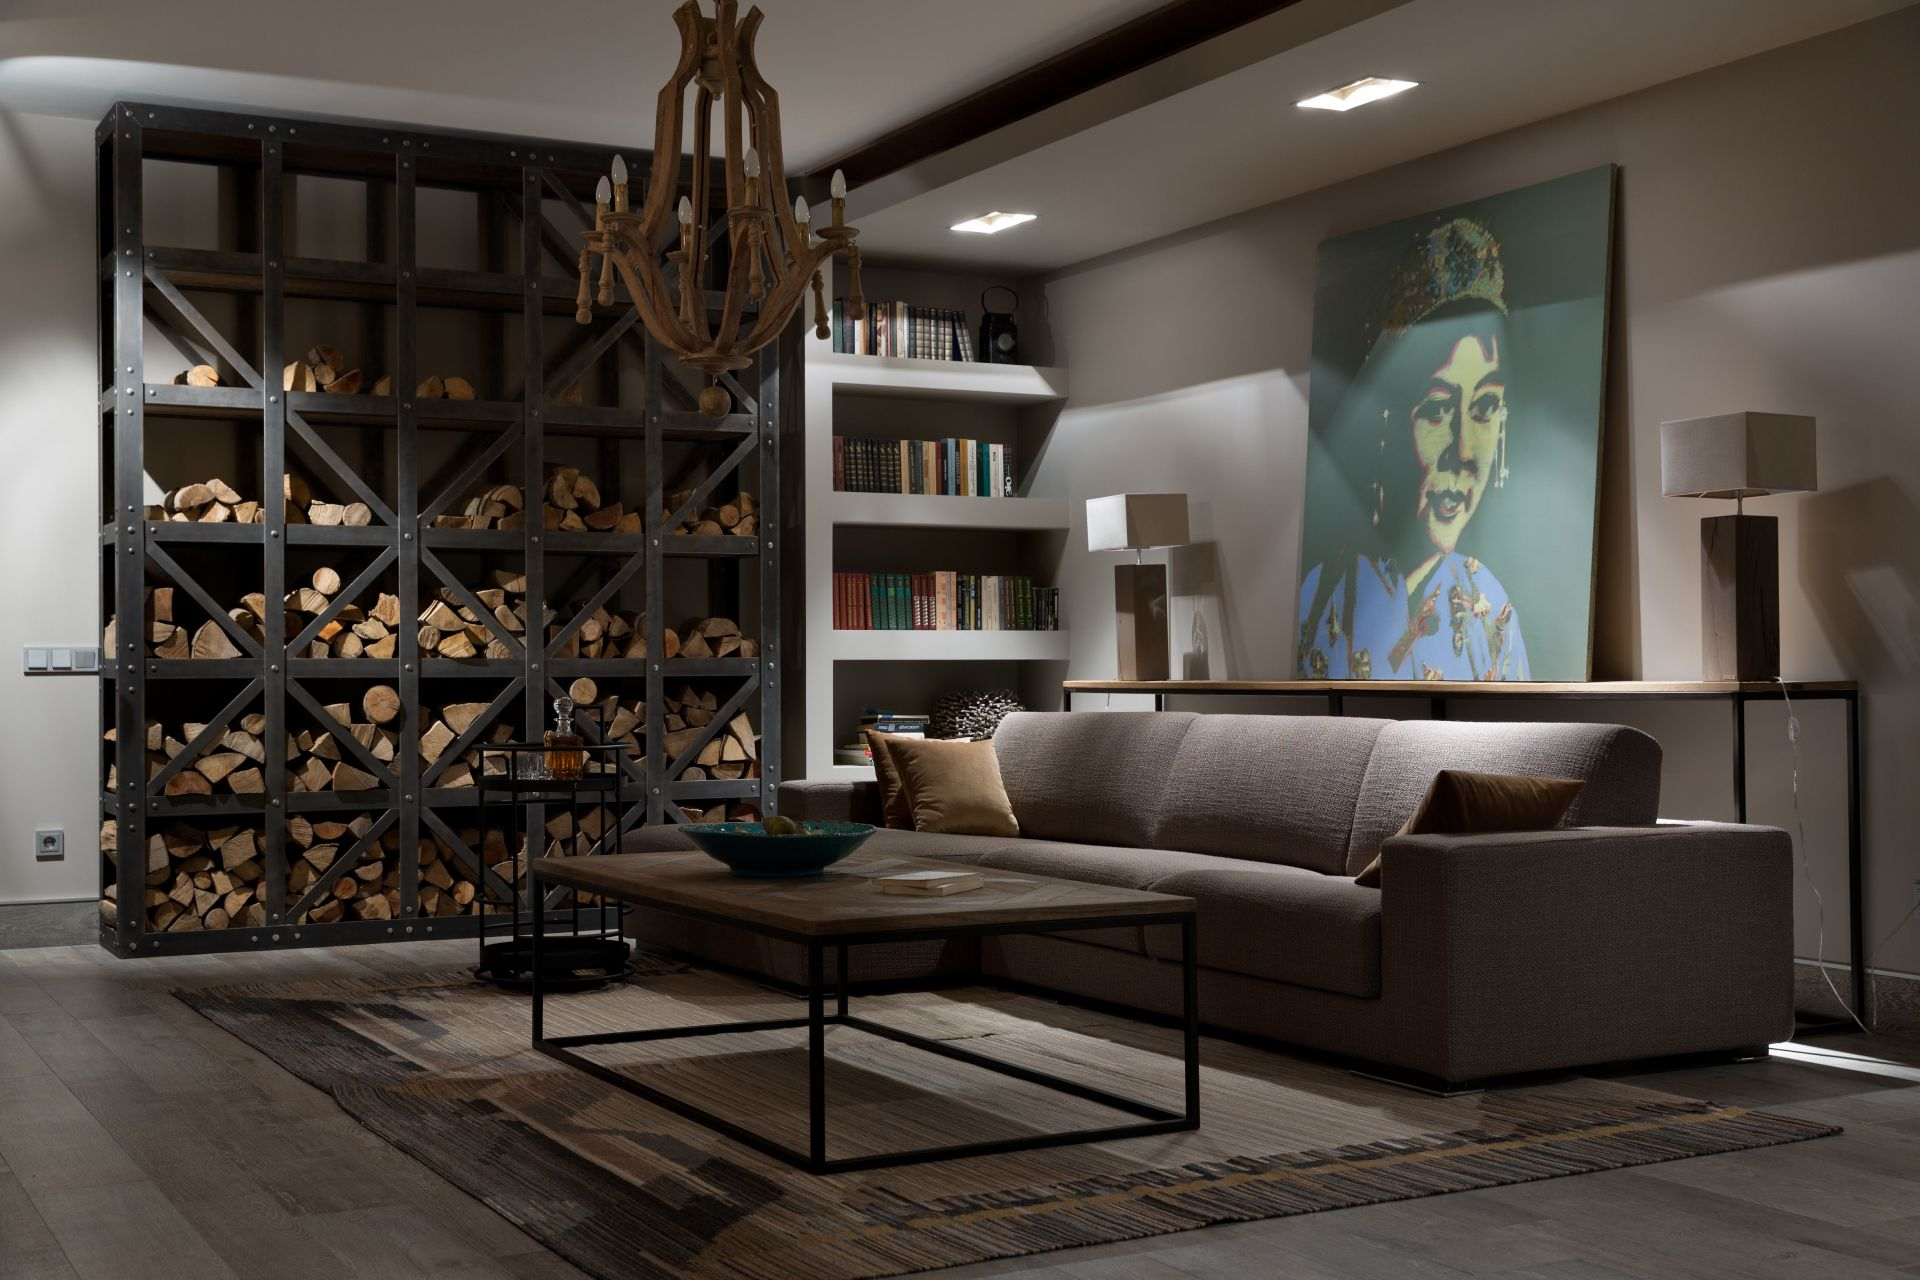 Ethnic style living room design